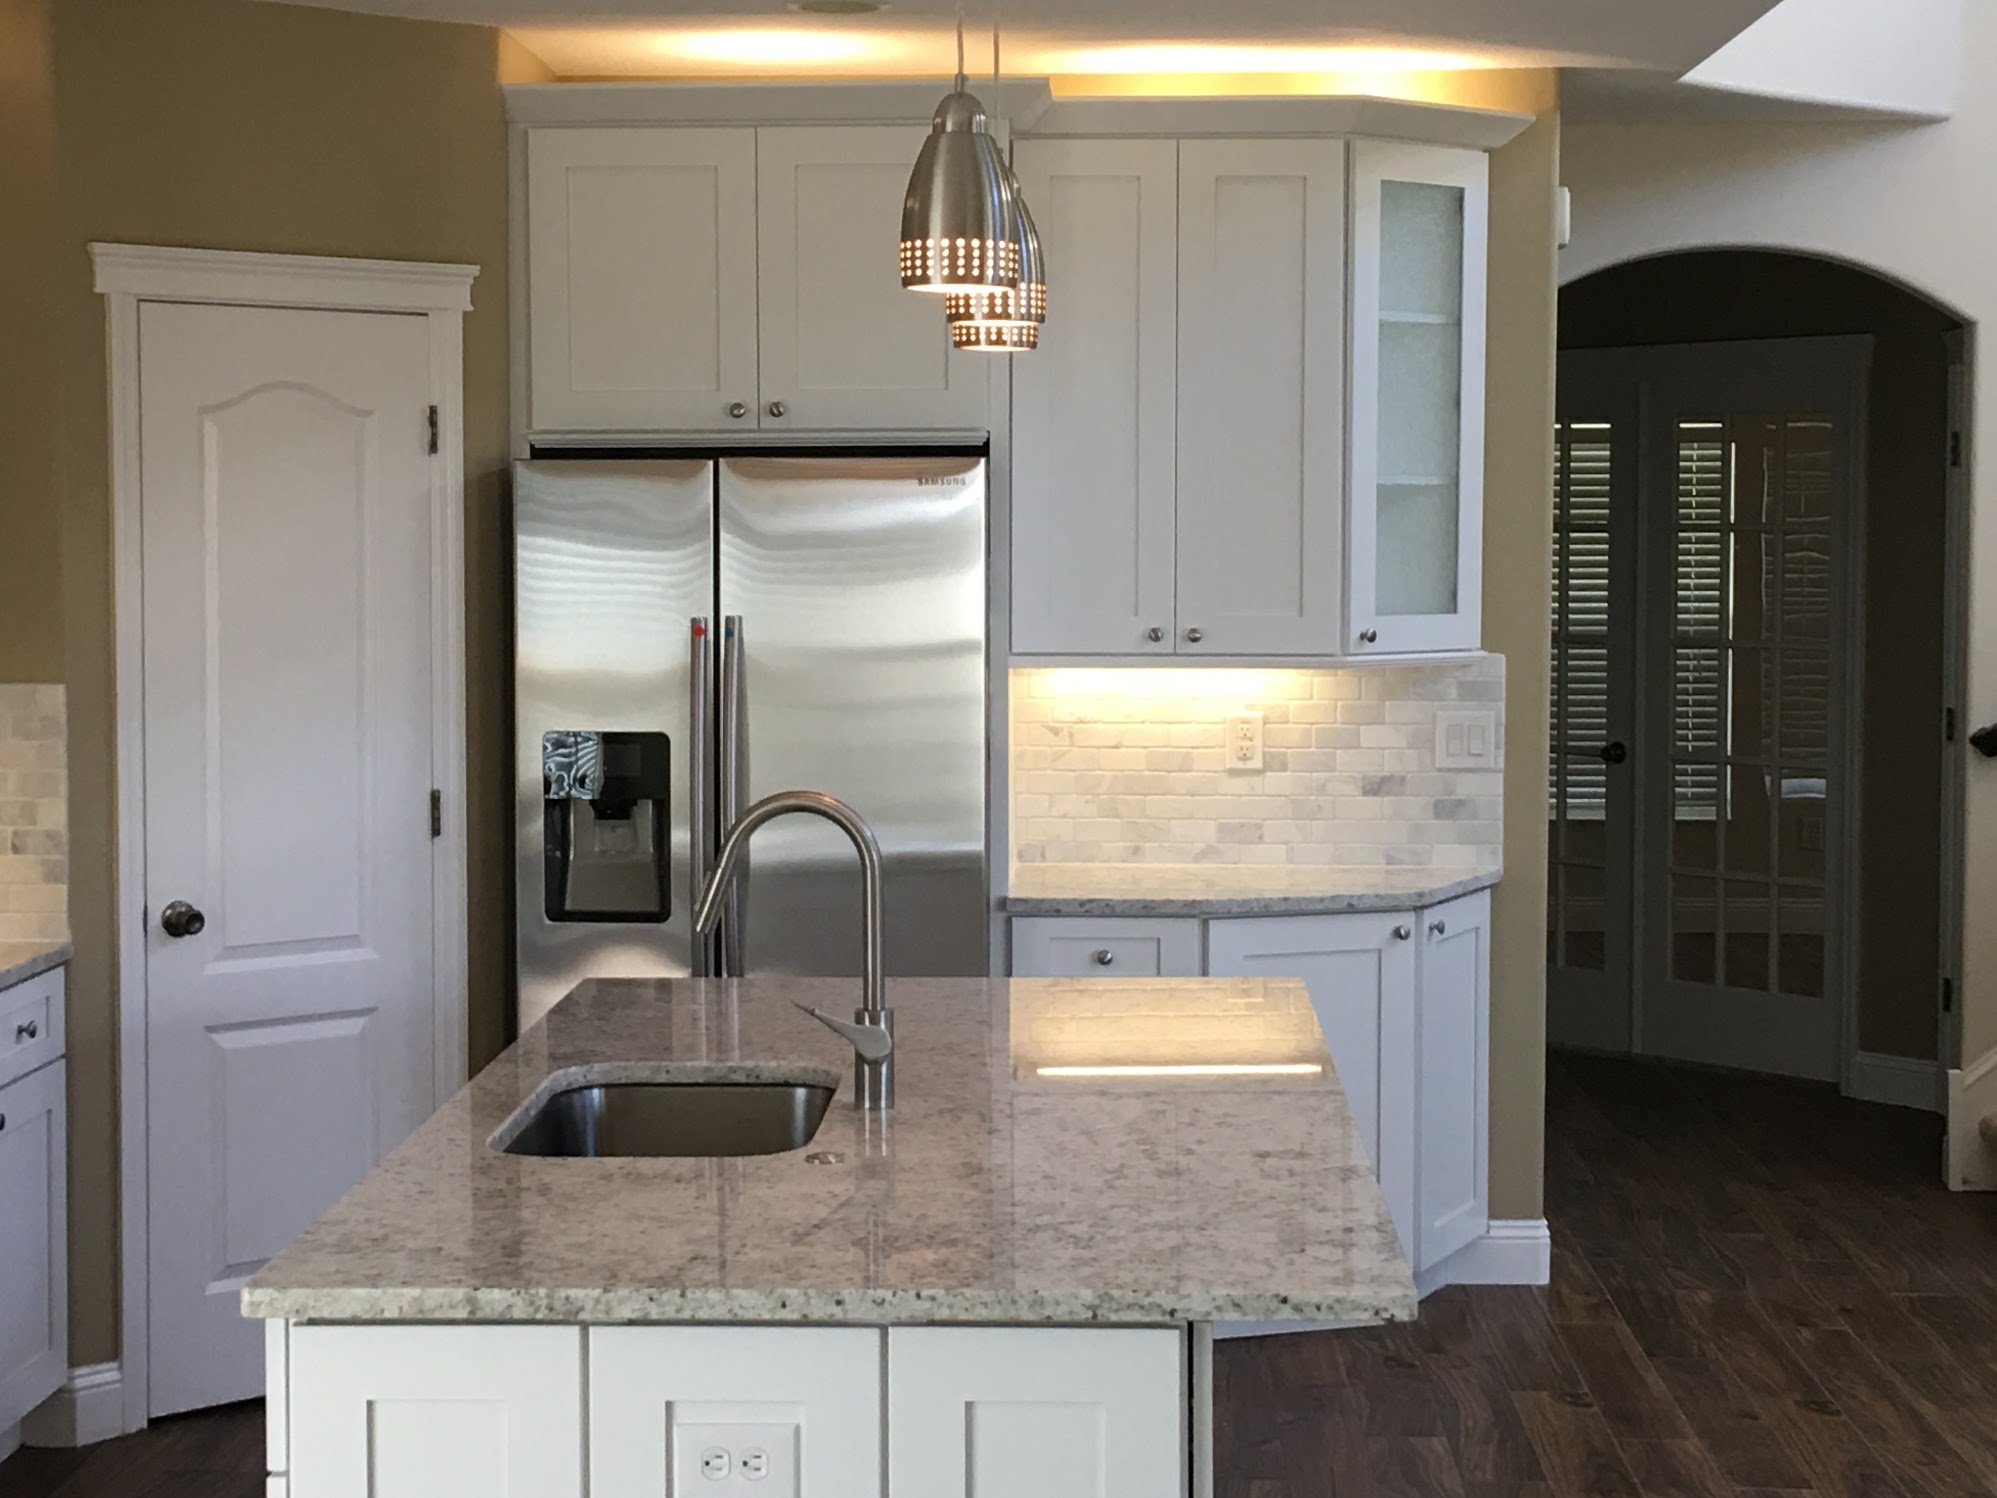 Able Builders, Inc In Largo Florida Knows A Thing Or Two About Kitchen  Remodeling And Kitchen Design Projects. With Over 25 Years Of Remodeling ...